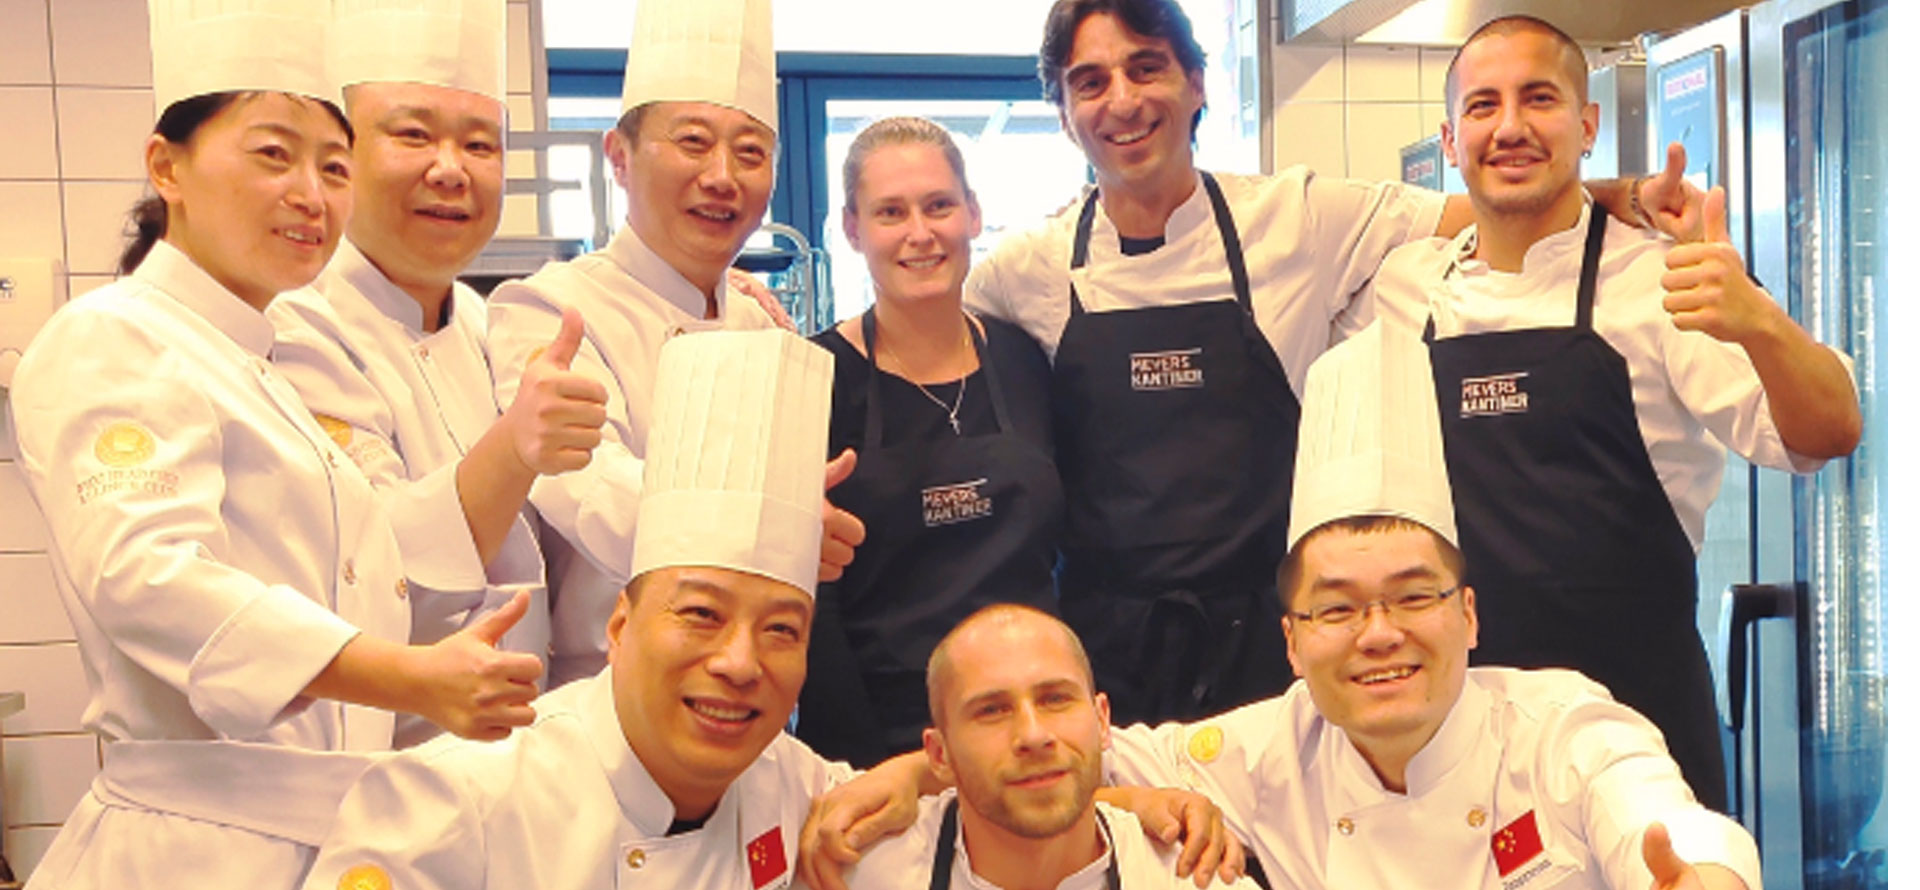 Wuxi Fine Food Delegation starts Chinese Gourmet Tour in Denmark